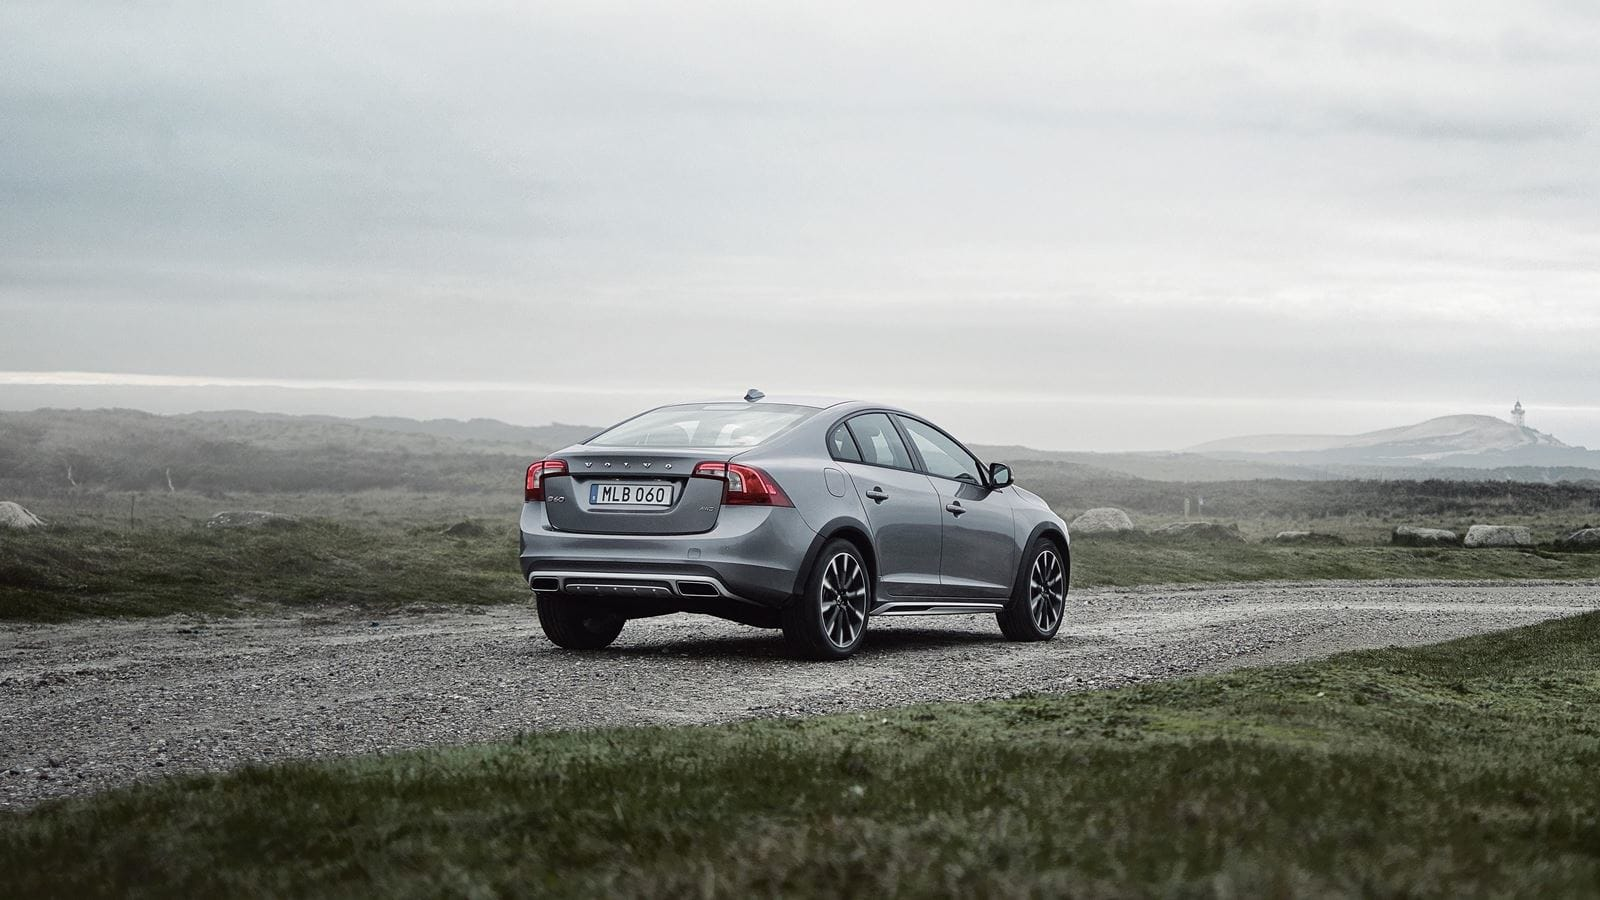 volvo-s60-crosscountry-exterior-right-back-patrik-johall-v1